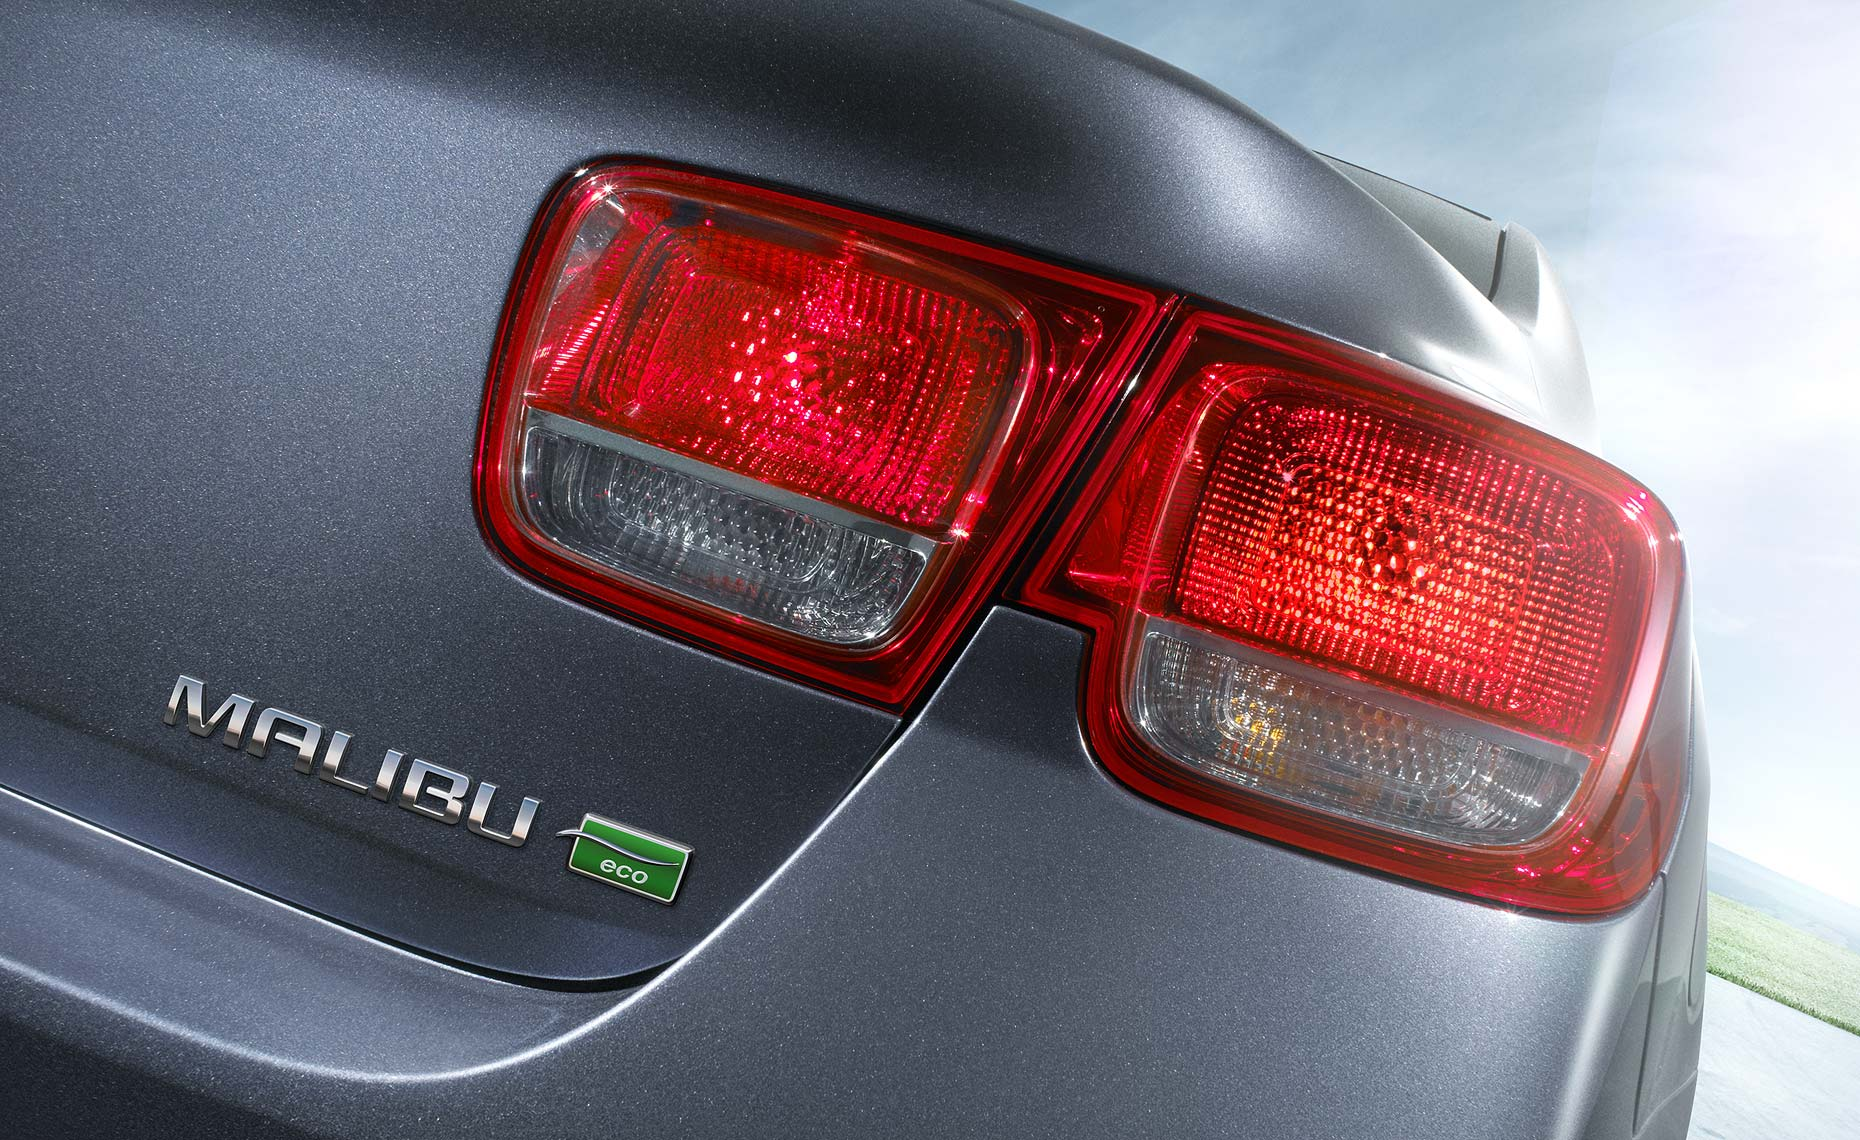 2013 chevy malibu-blue-taillight-rear detail.jpg